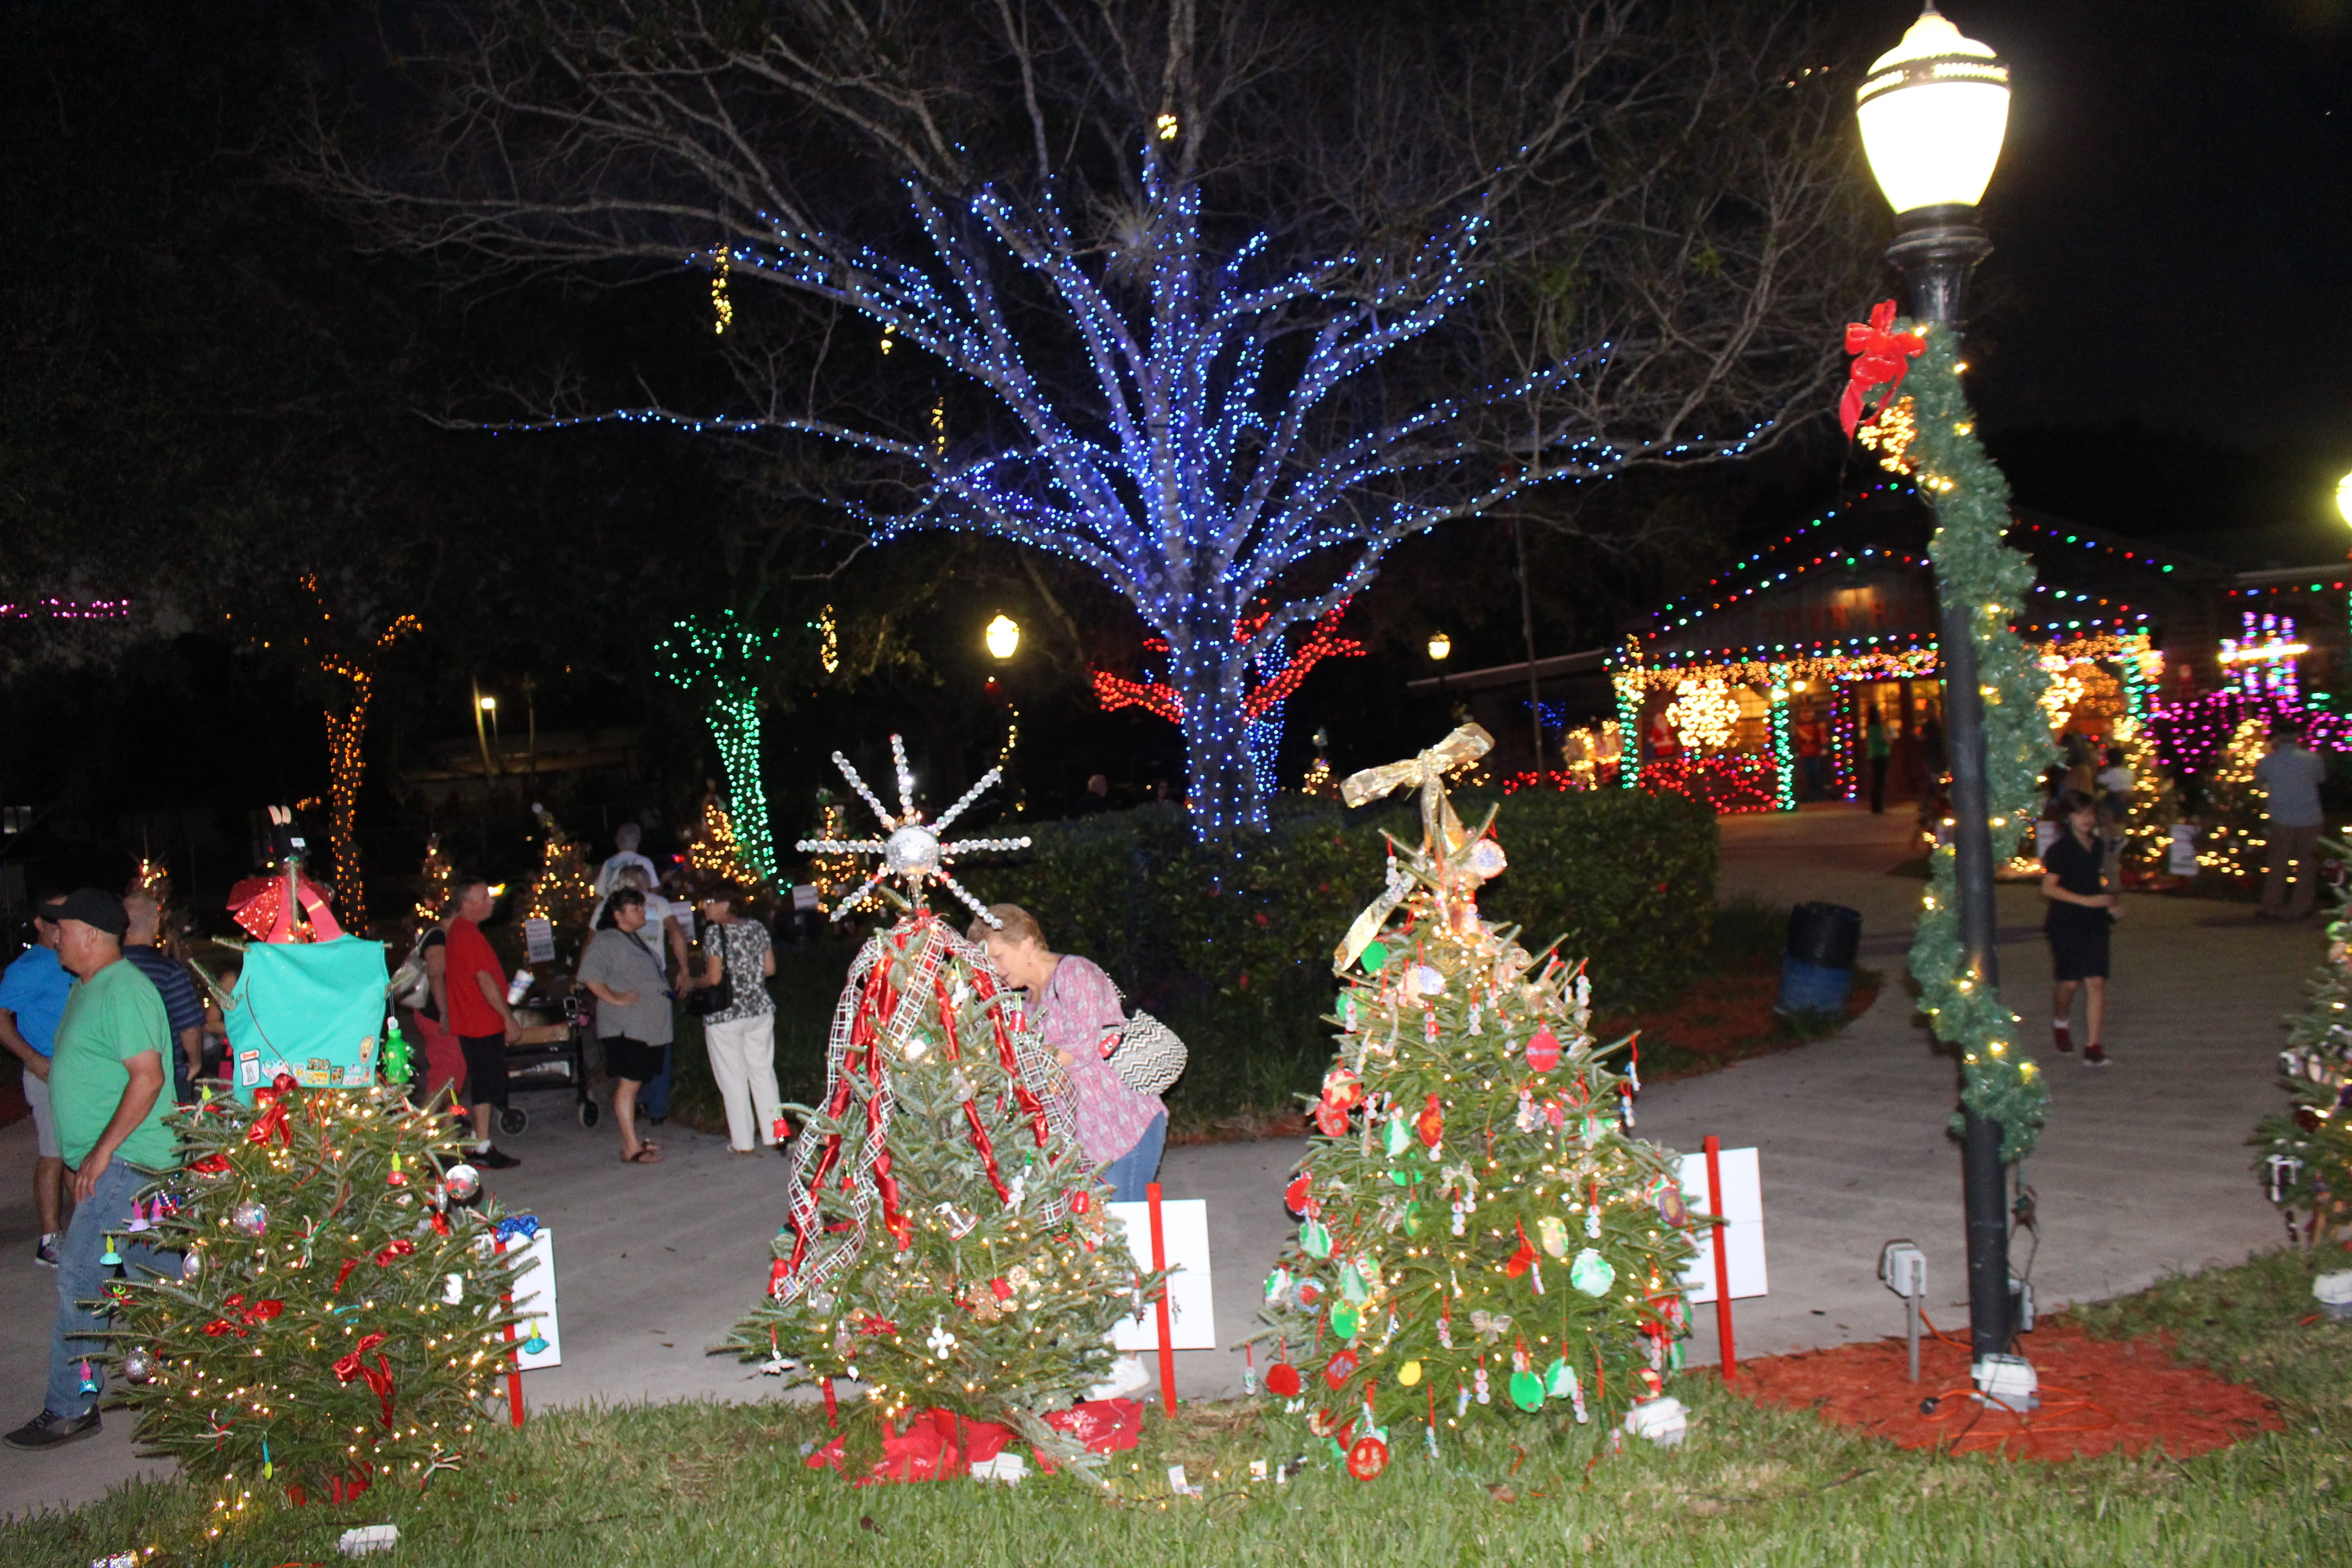 Davie lights up for the holidays   The Current